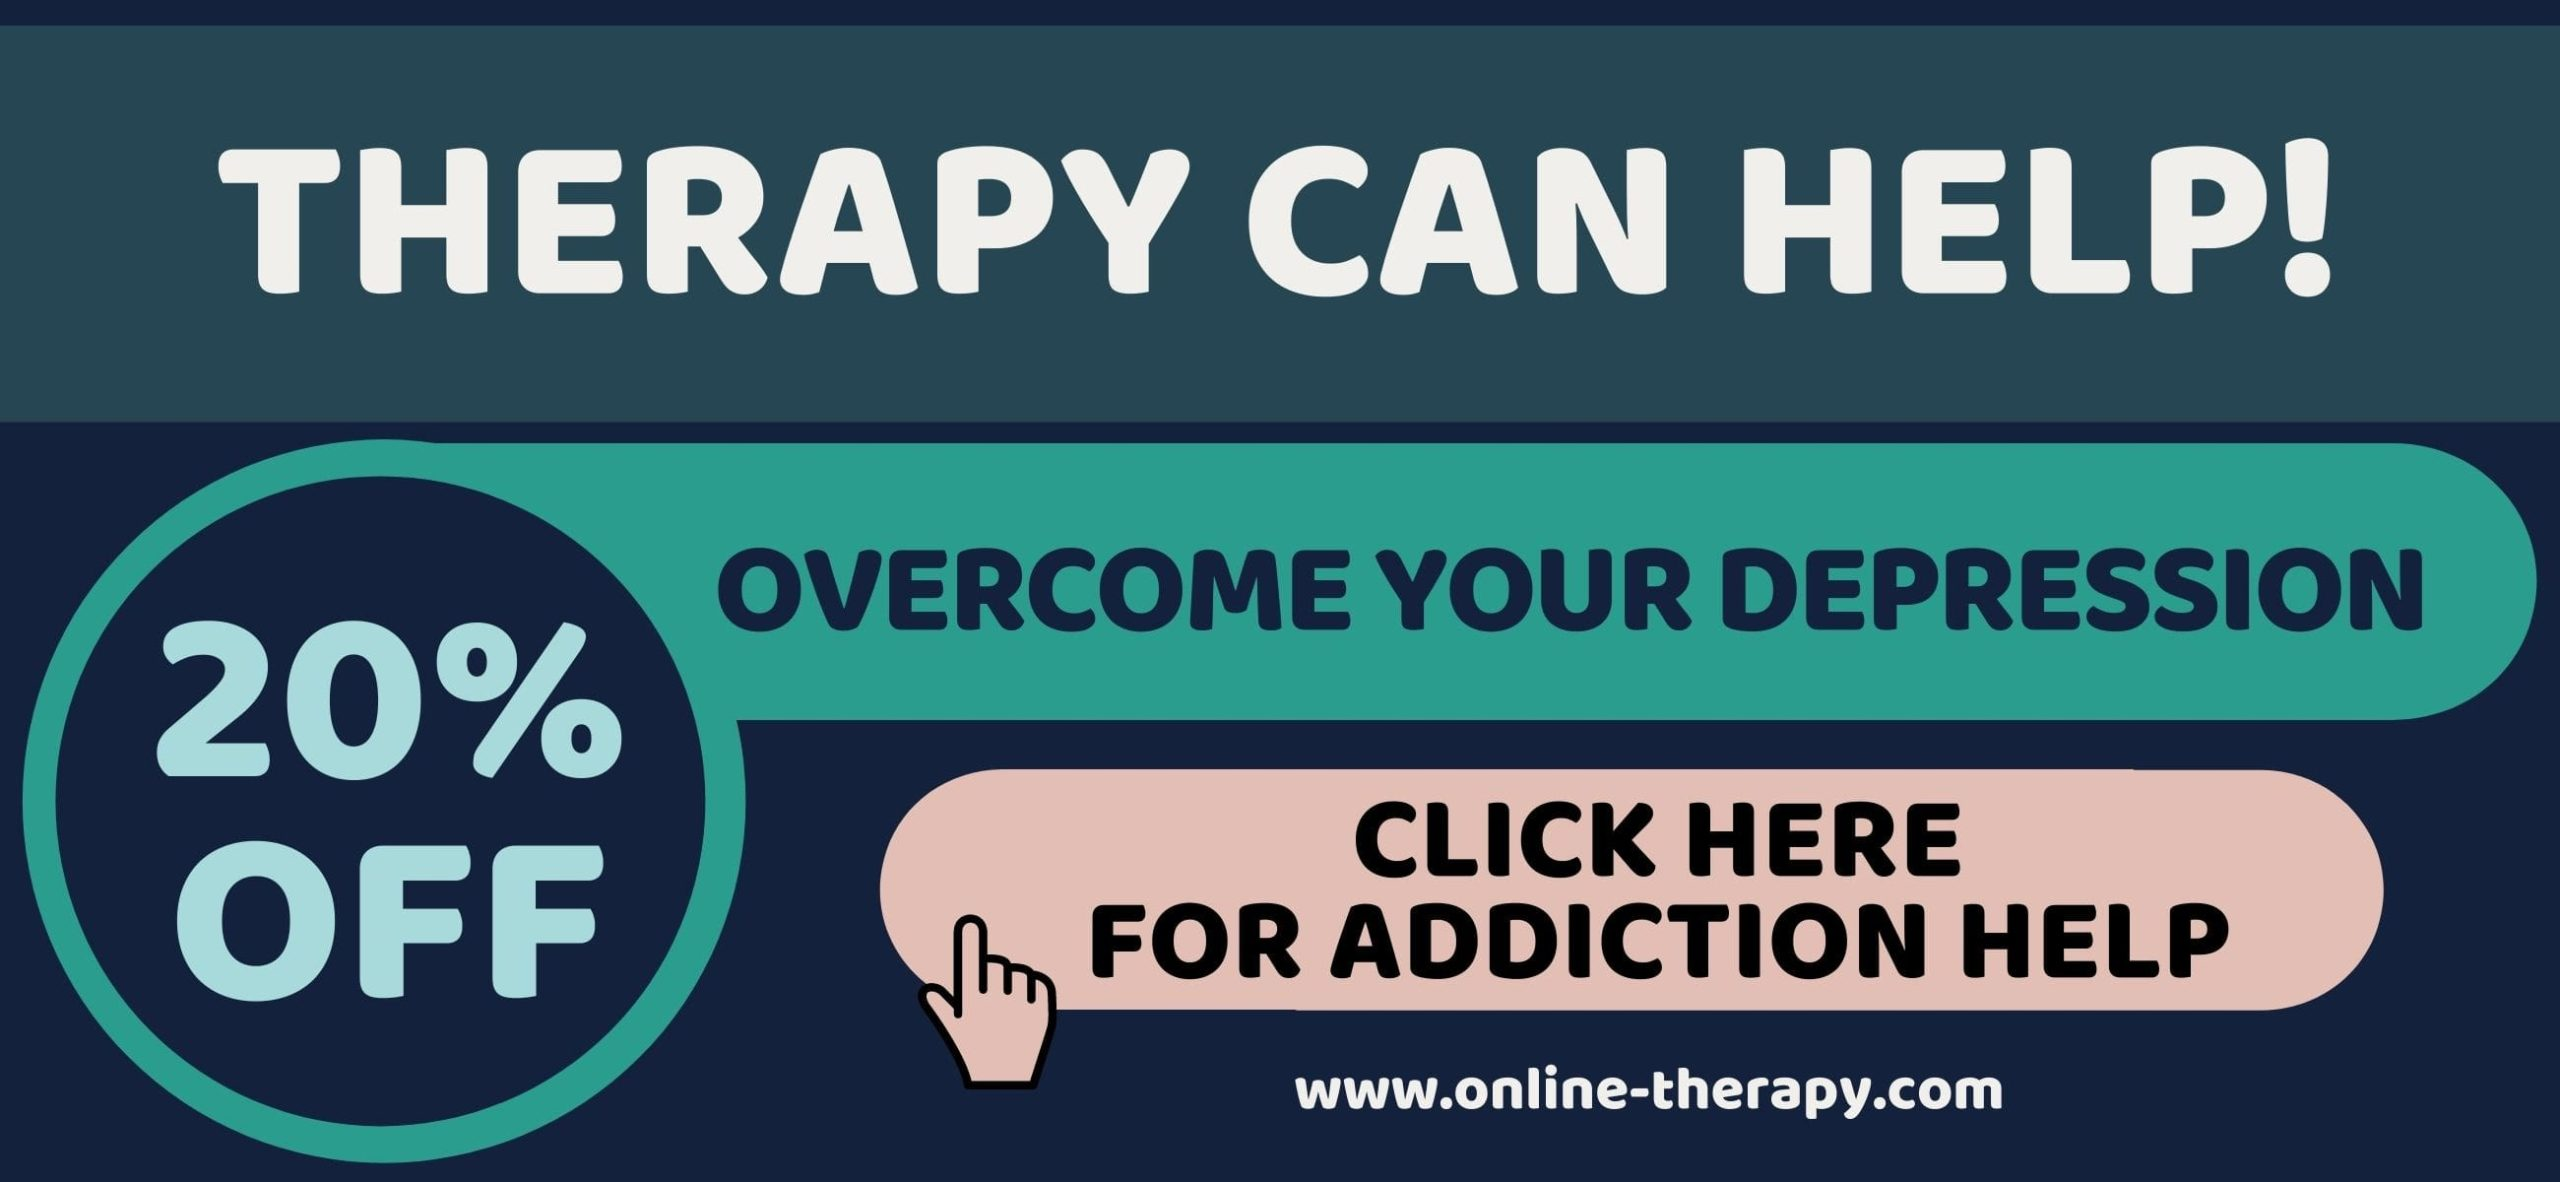 THERAPY CAN ADDICTION HELP-min